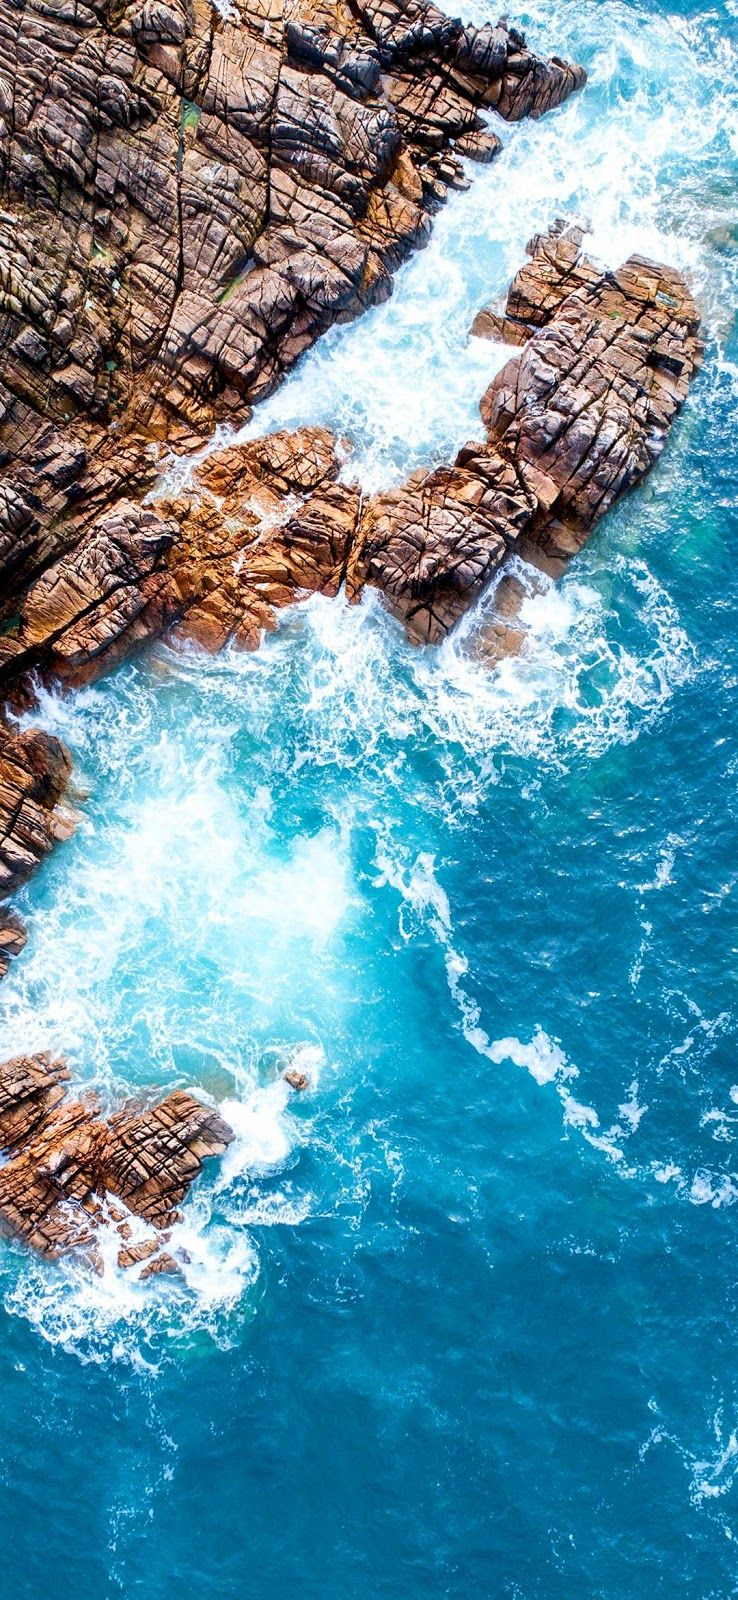 Nature Wallpaper Download In 2020 With Images Hd Nature Wallpapers Nature Wallpaper Beach Wallpaper Iphone